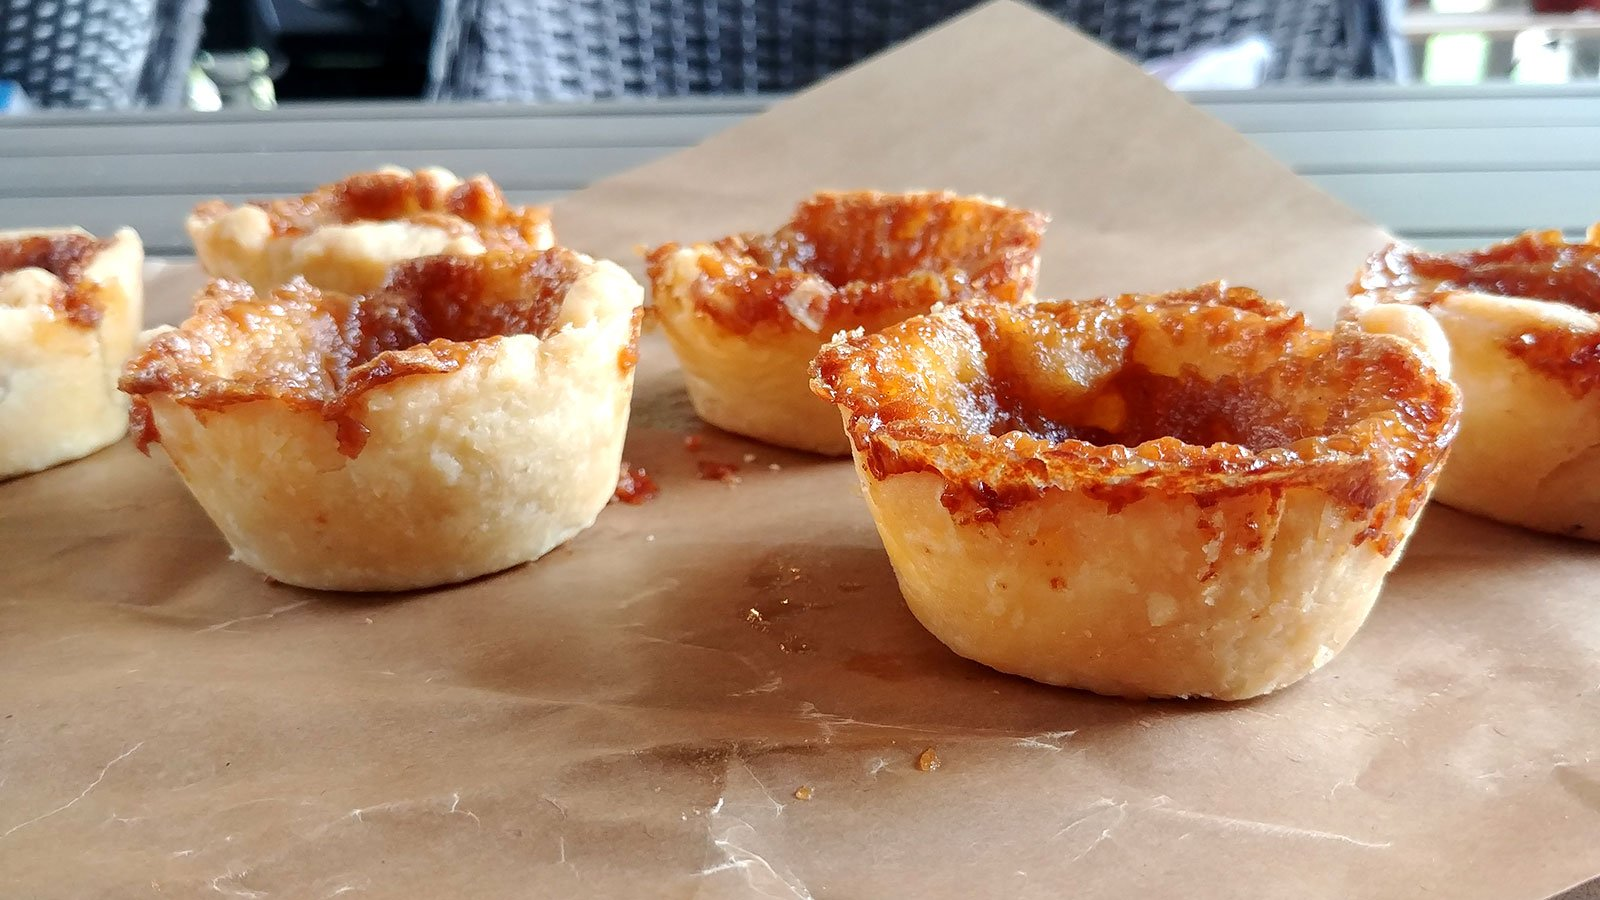 Roguetrippers butter tart quest lead them to the Grove Farm Shop